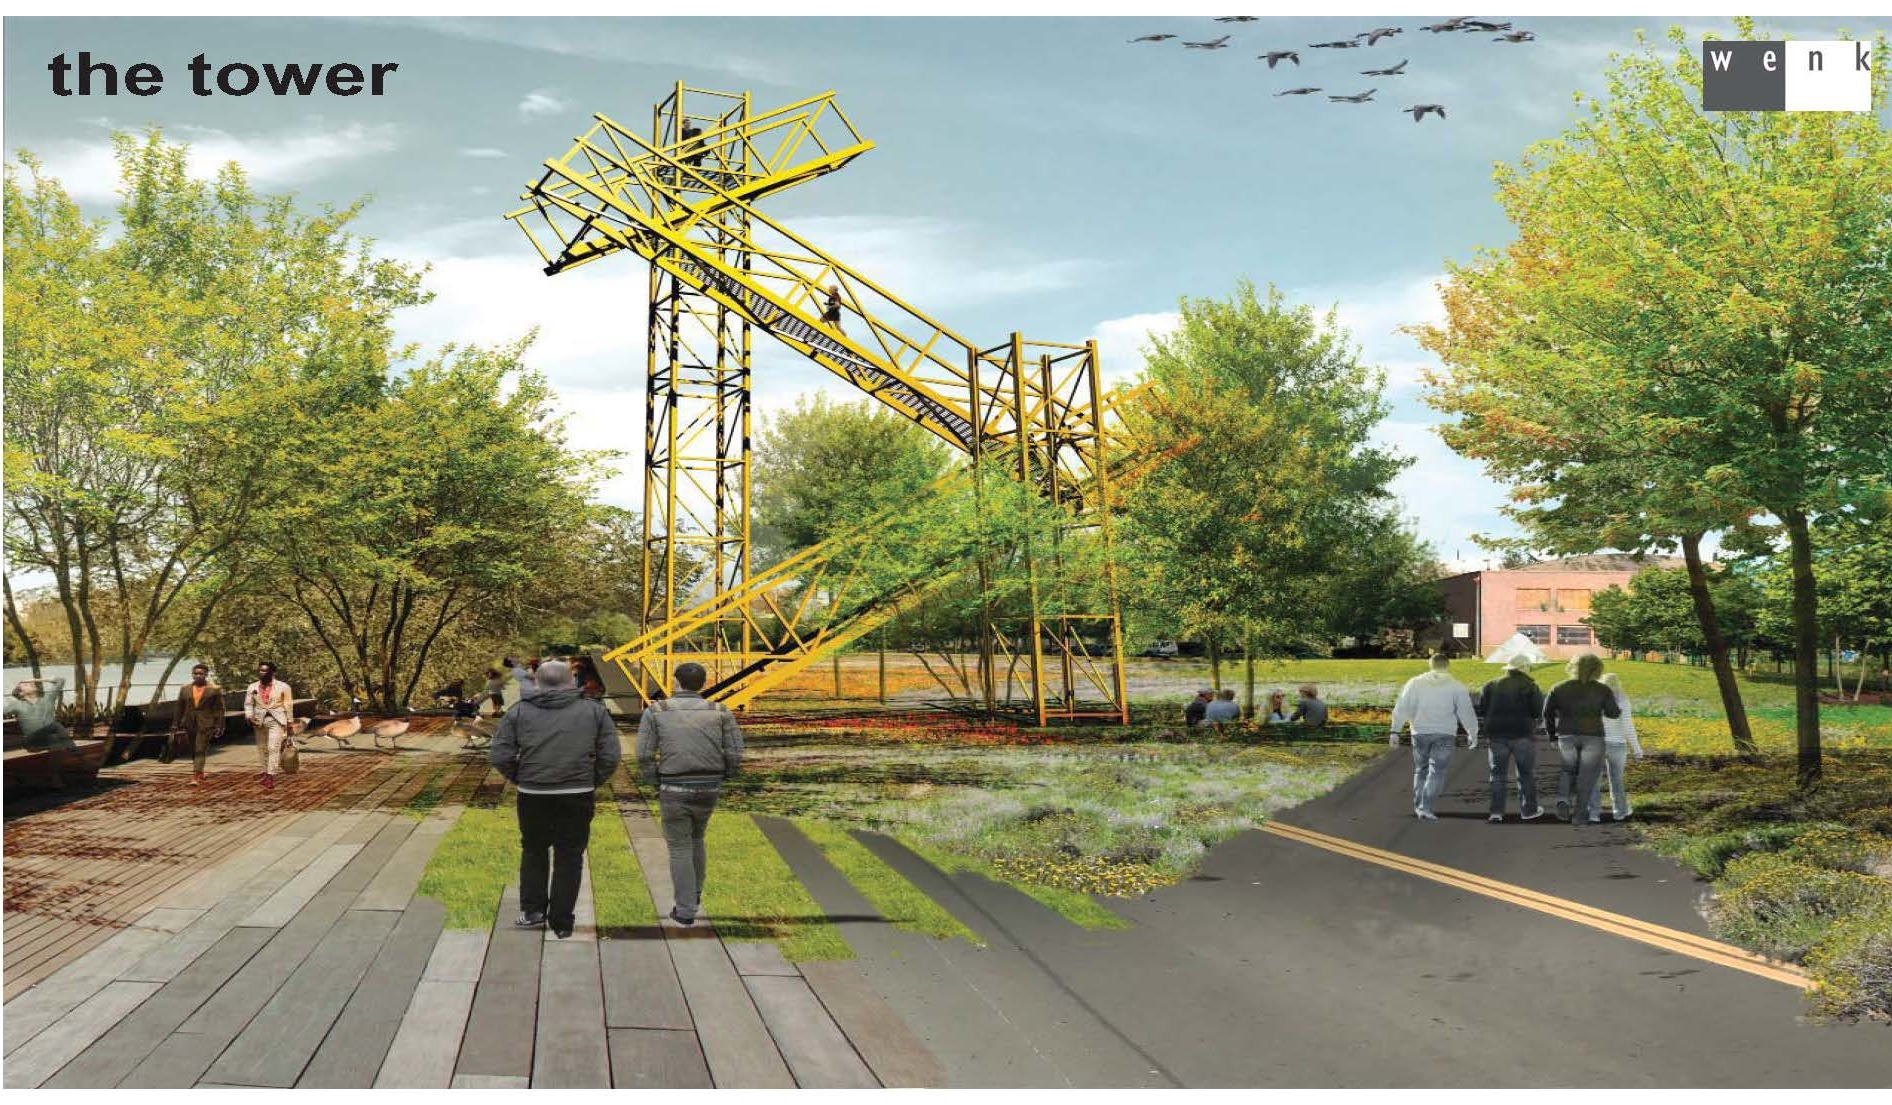 """RiNo Promenade plans & funding in the works; fundraiser Friday  """"Developer Bernard Hurley envisions a """"festival street"""" including breweries, cafes, restaurants and music venues. The project would create around 12 acres of public space for the community"""".   4/28/17 Denver 7"""